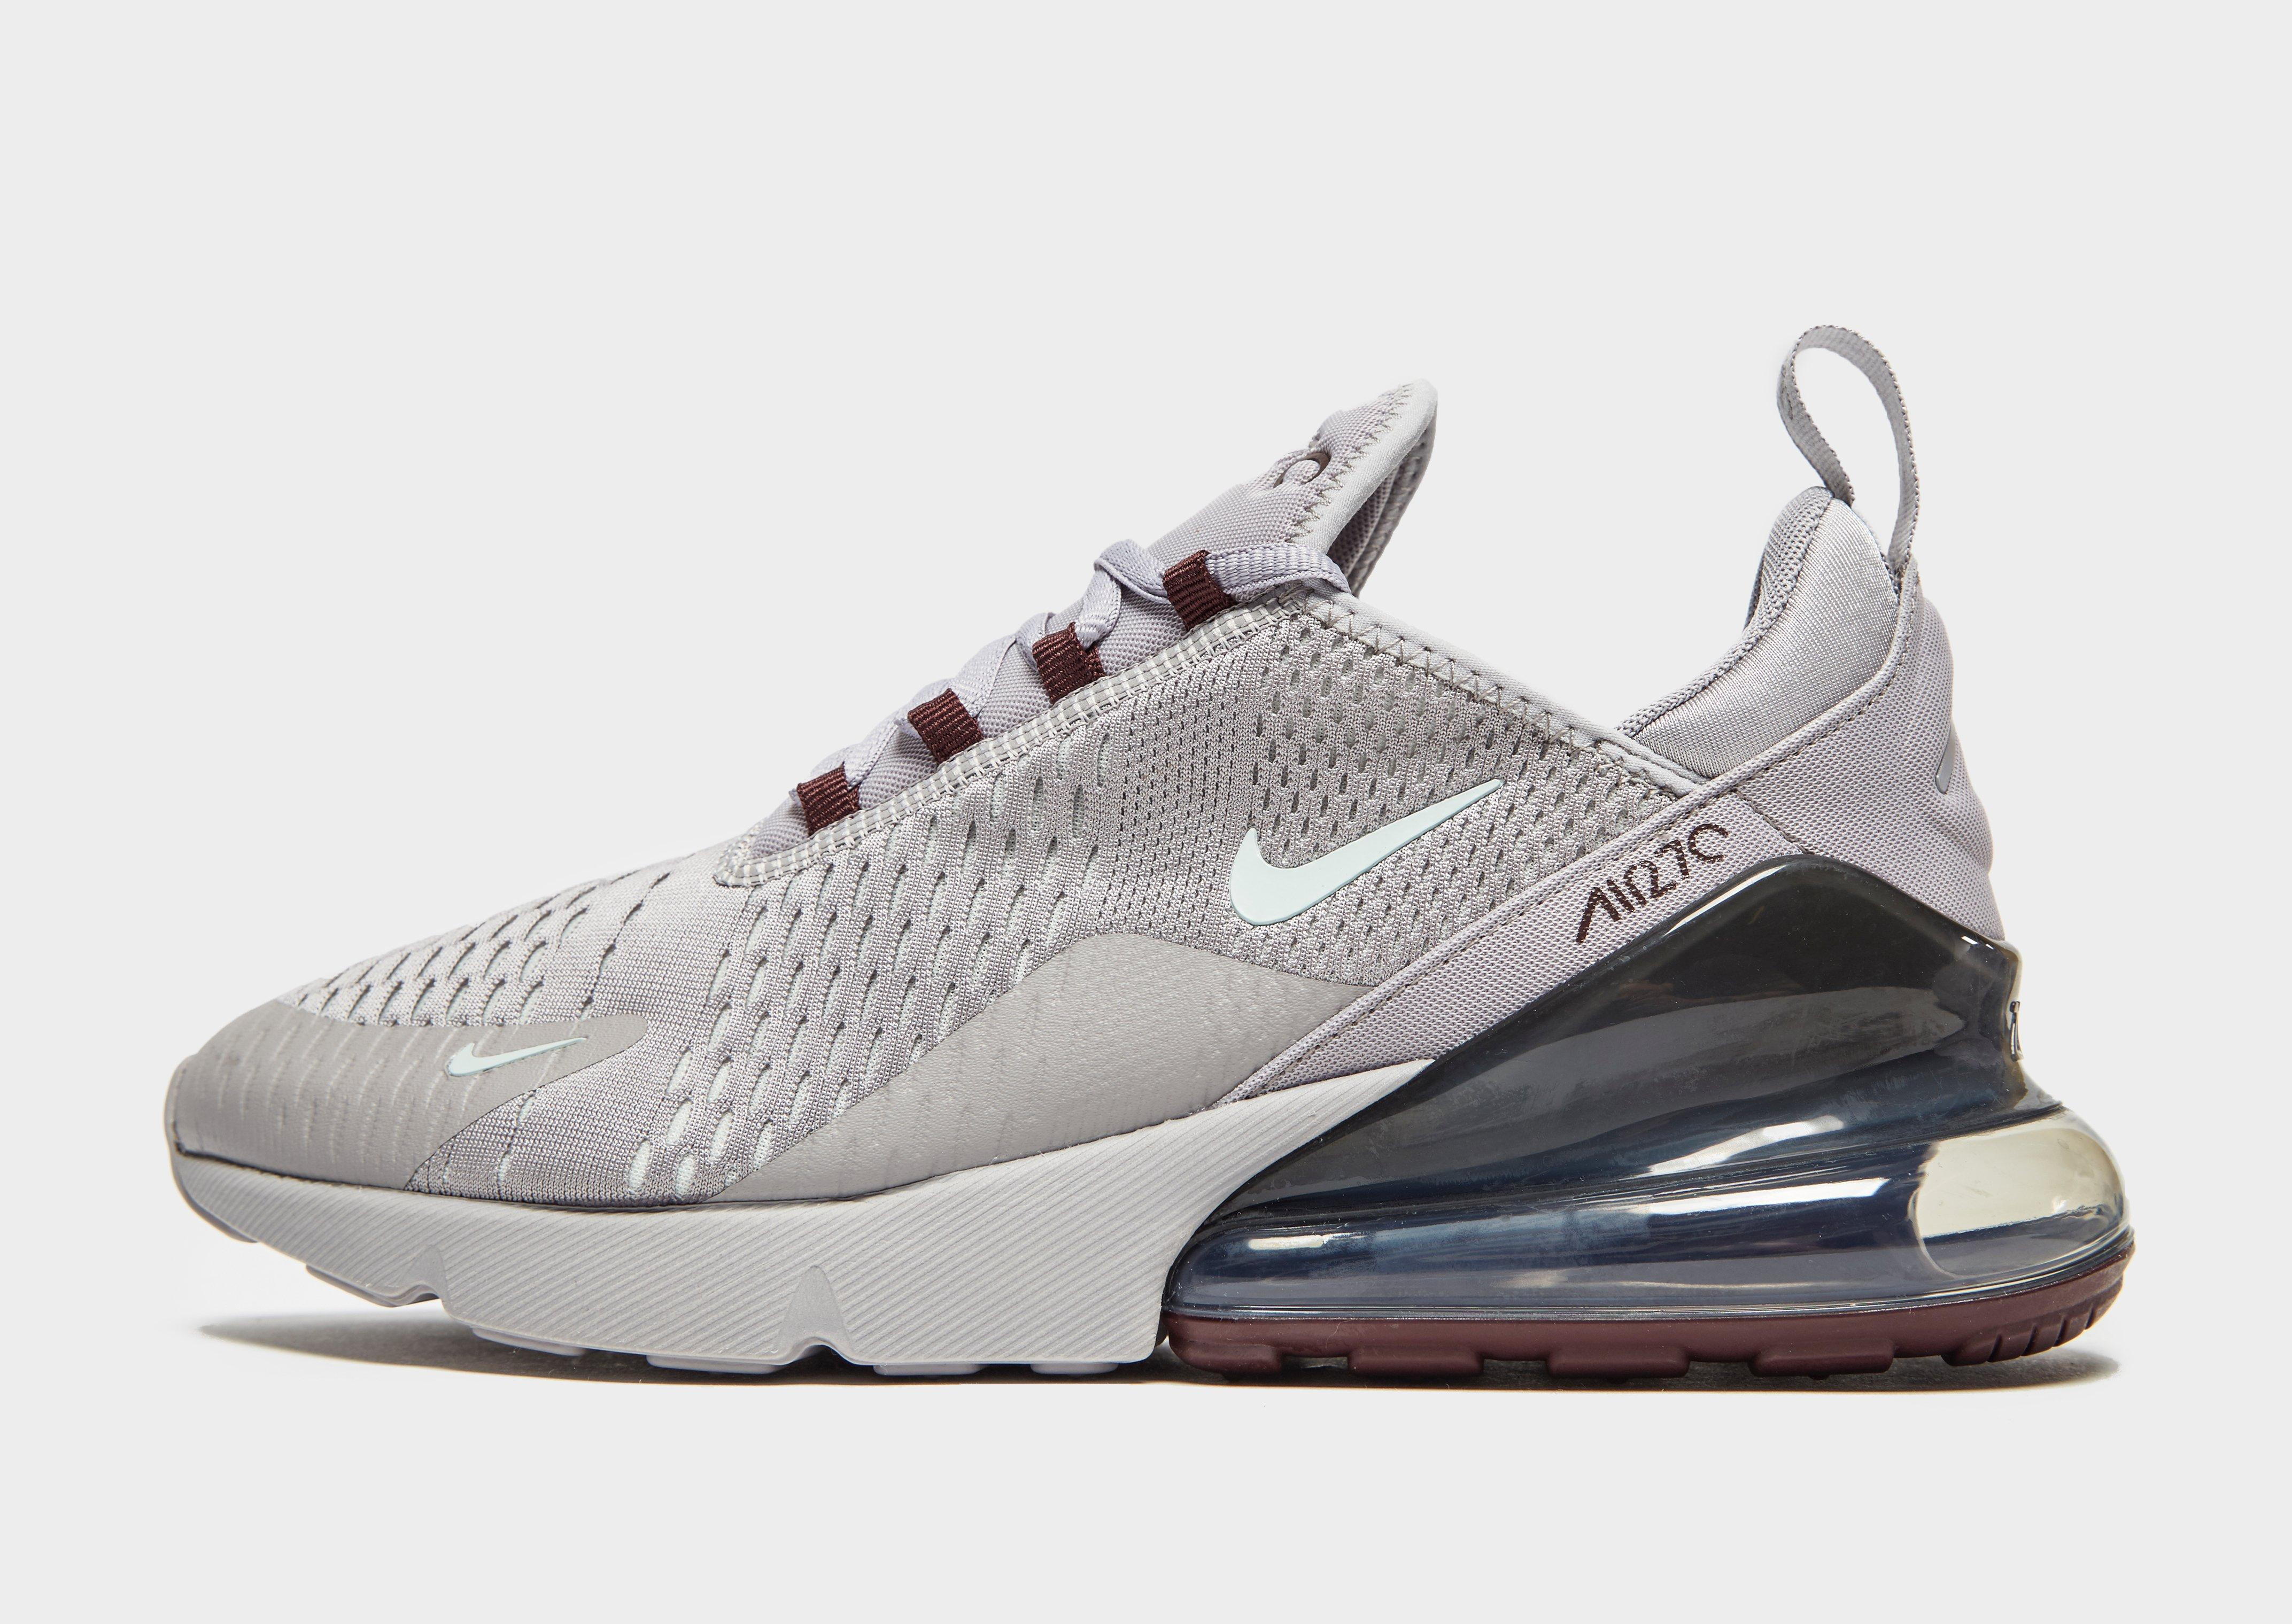 the best attitude 1432d bfe8f wholesale dealer 70af5 87dab nike air max 270 jd sports ...